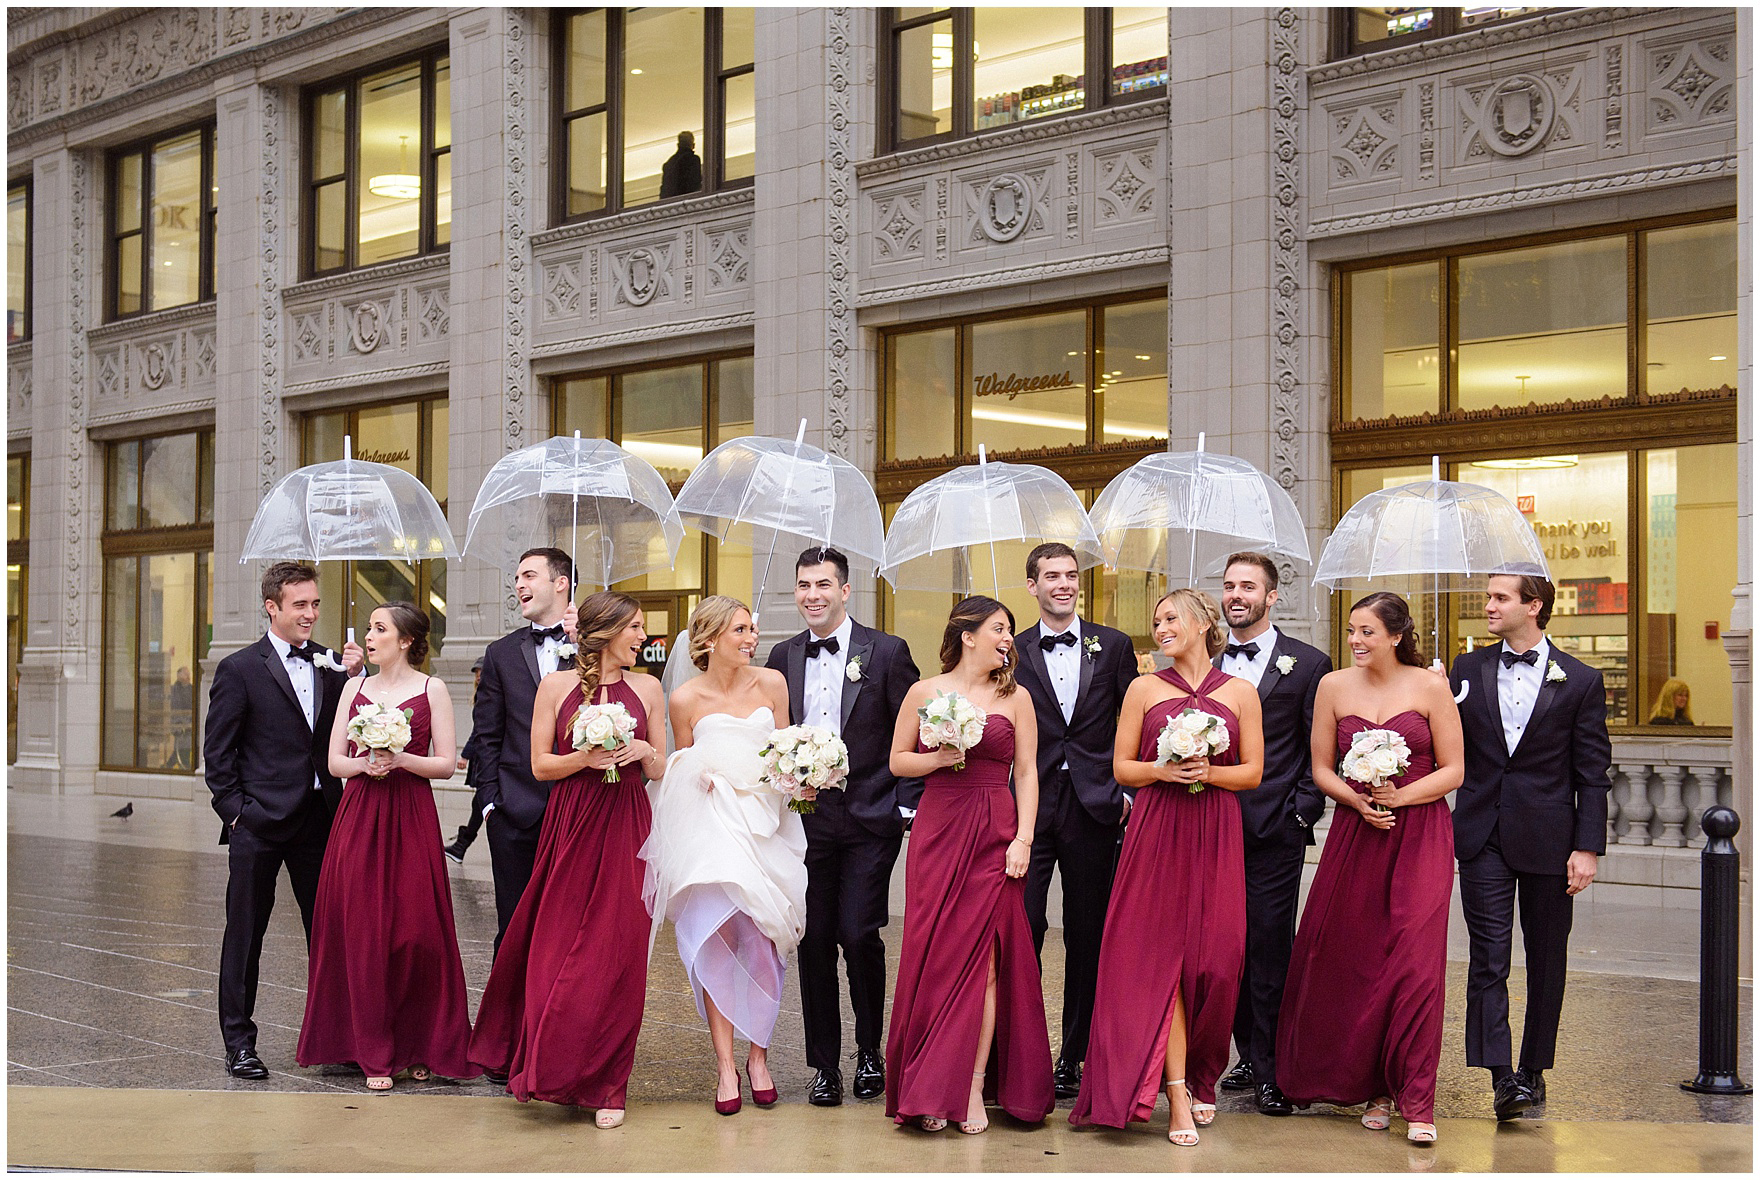 The bridal party carries umbrellas as they walk in front of the Wrigley Building during a St. Clement Germania Place Chicago wedding.